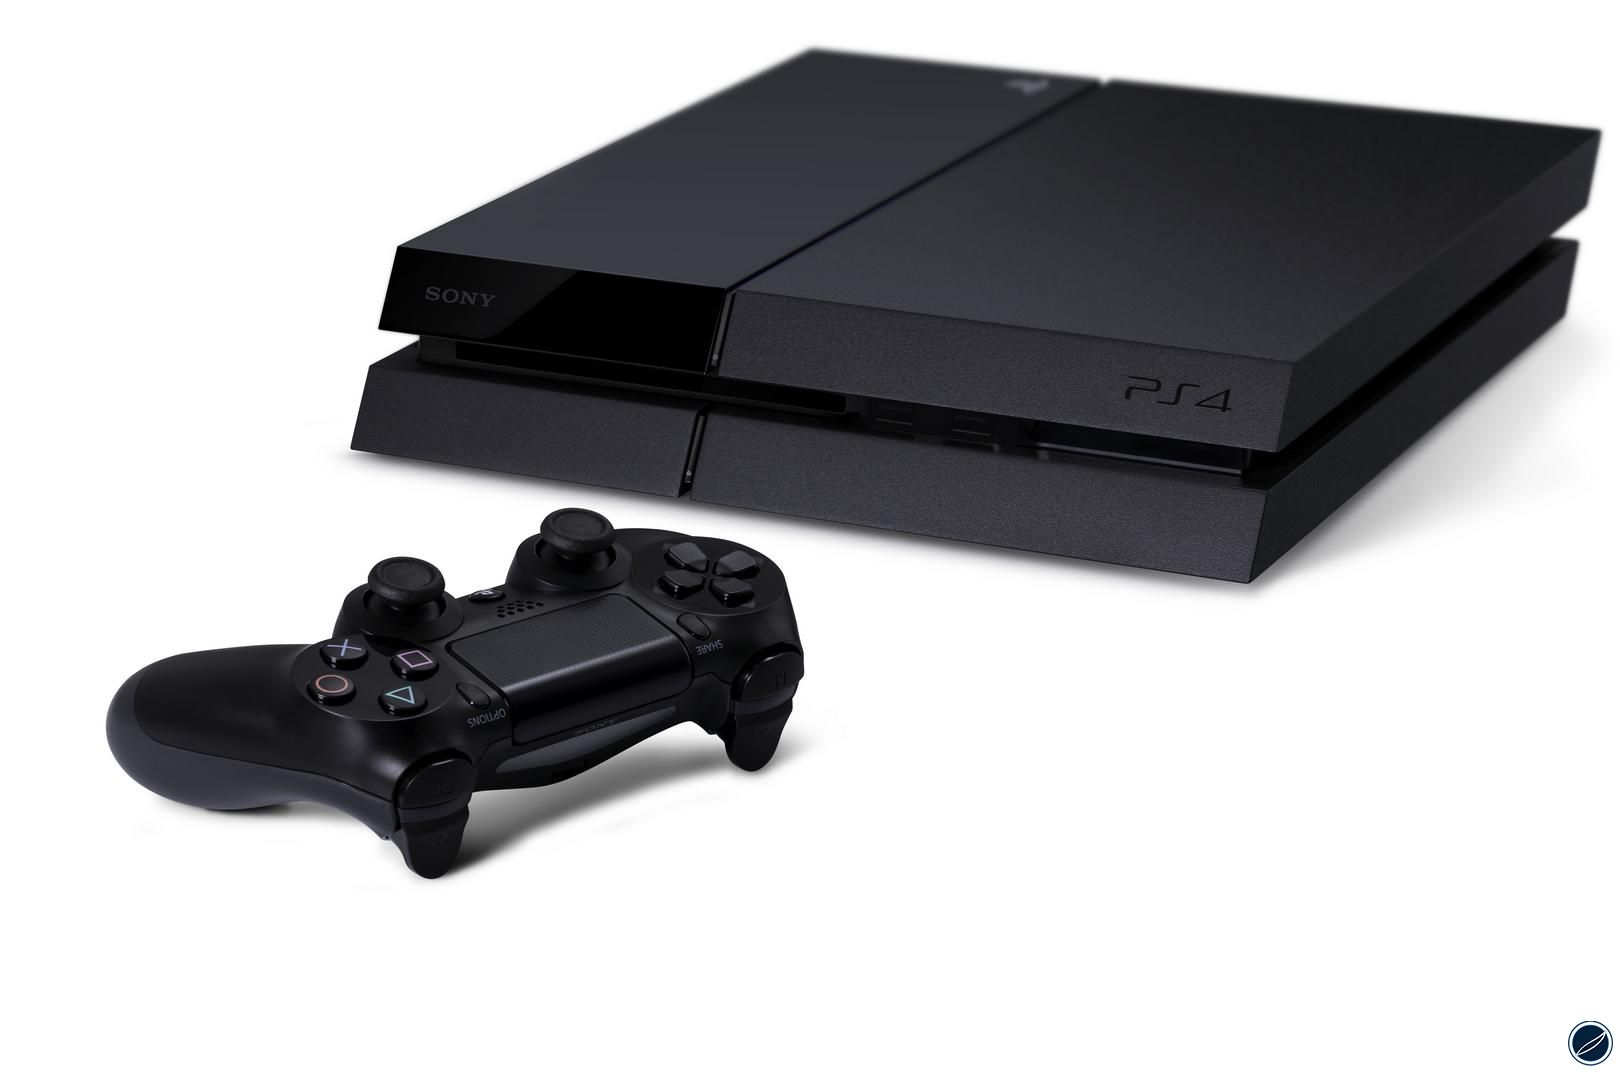 playstation-4_PS4_w_8341.jpg